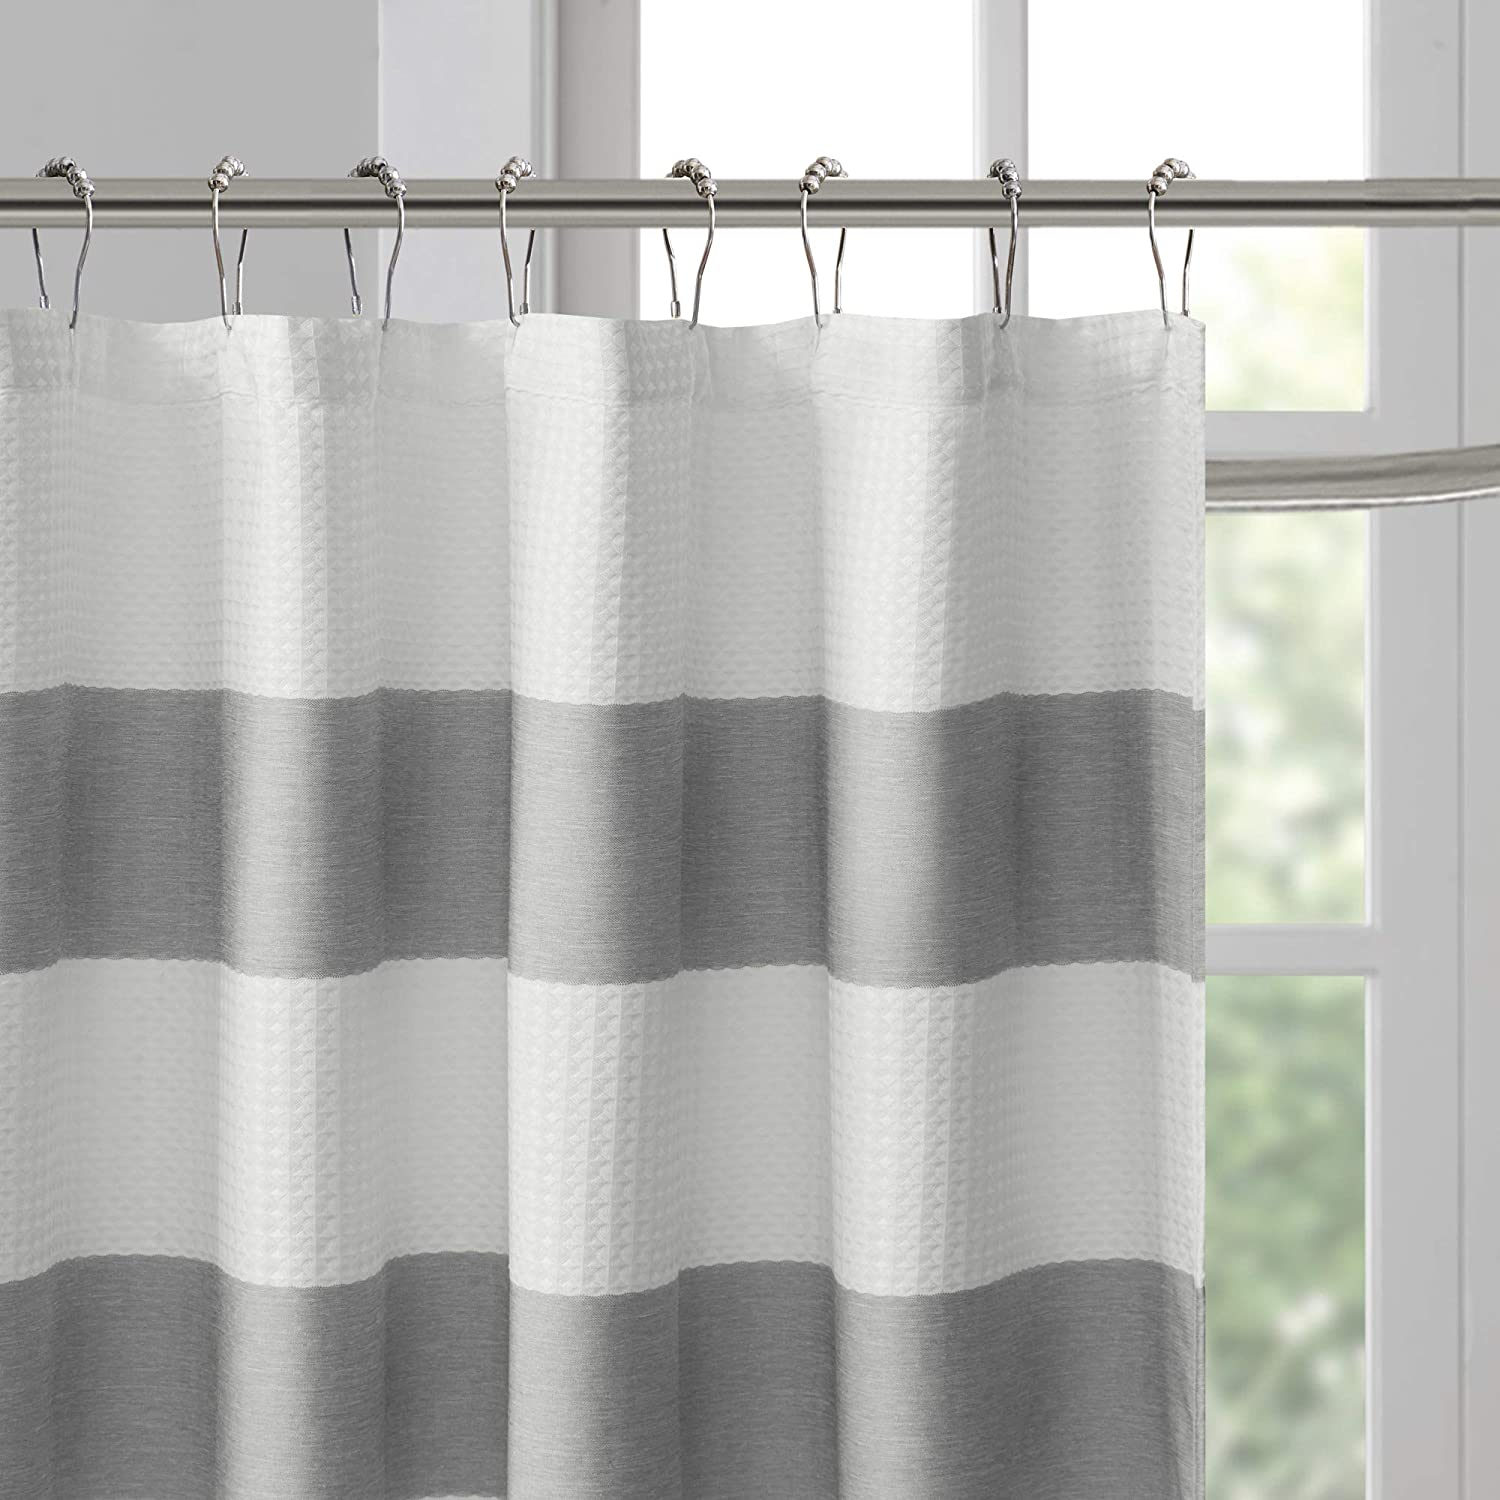 JLA Home INC Madison Park Spa Waffle Weave Striped Fabric Shower Curtain Classic Curtains